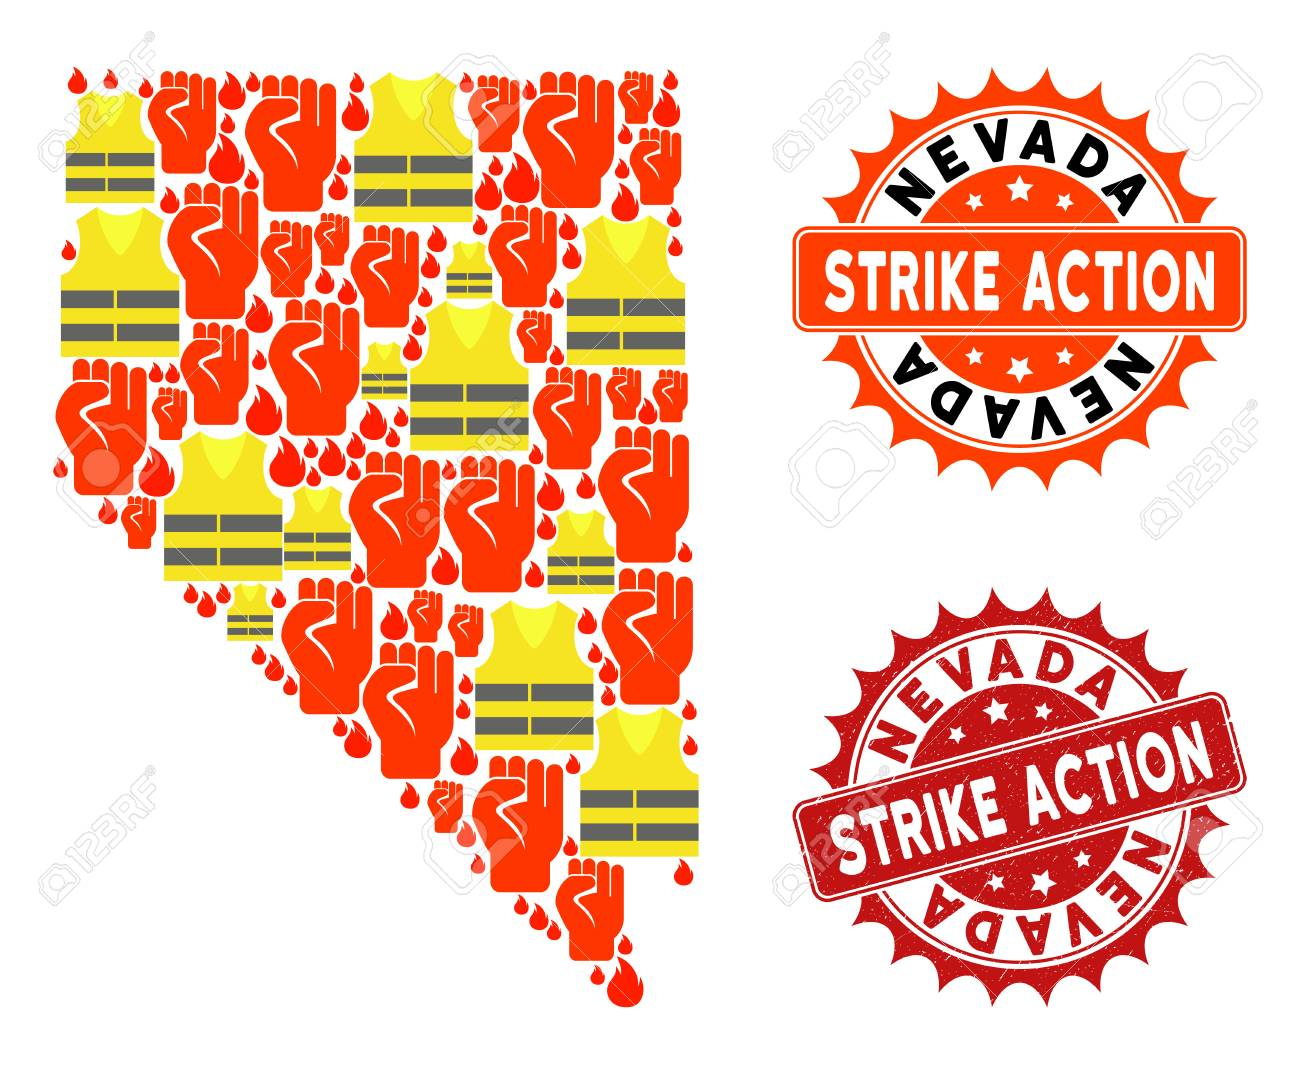 Strike action composition of revolting map of Nevada State, grunge..